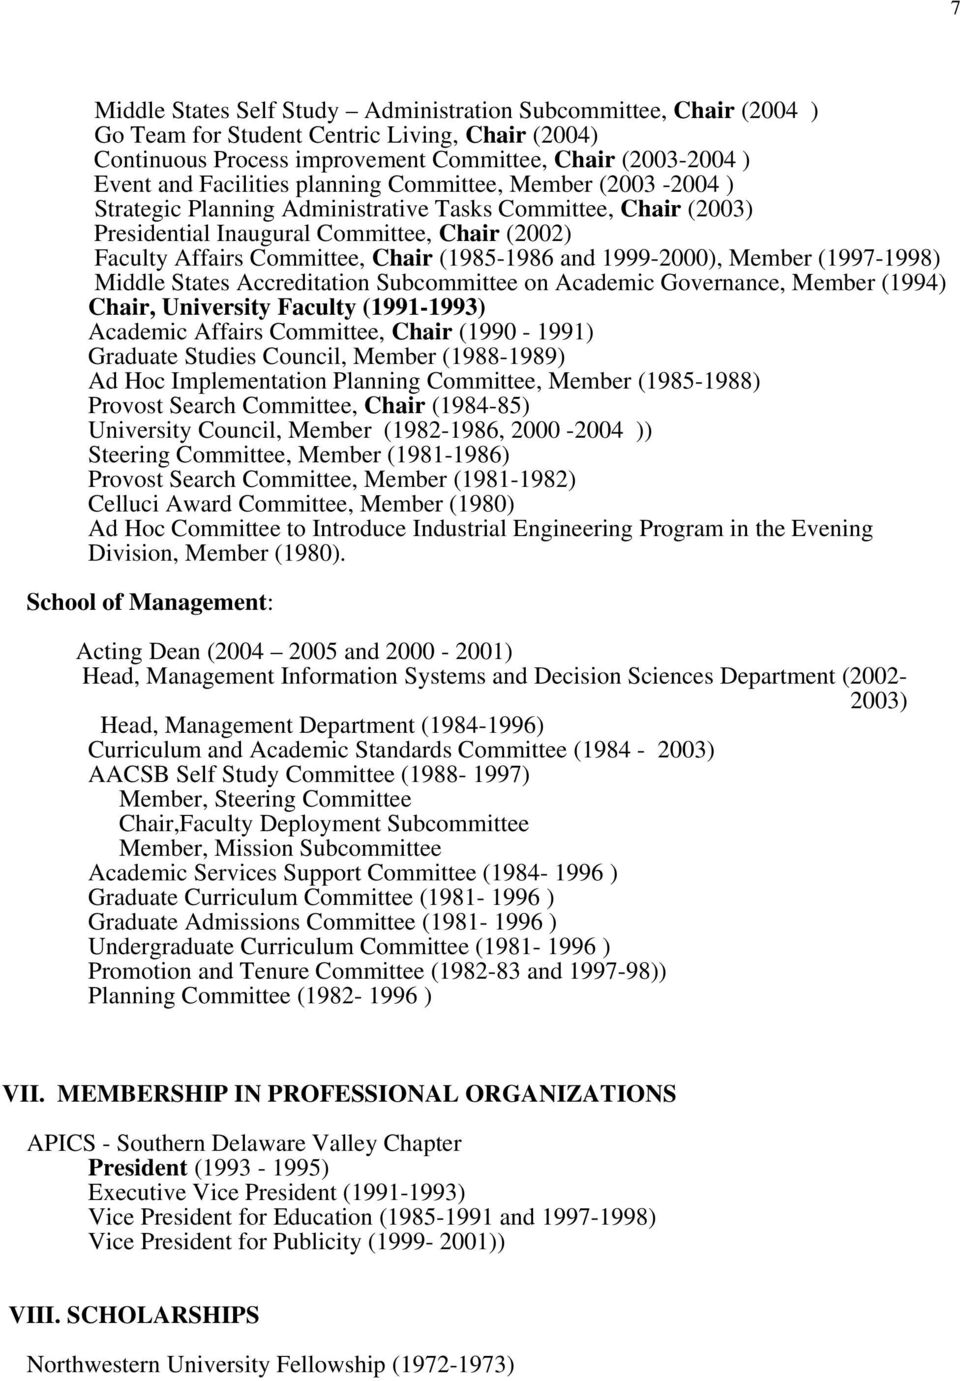 (1985-1986 and 1999-2000), Member (1997-1998) Middle States Accreditation Subcommittee on Academic Governance, Member (1994) Chair, University Faculty (1991-1993) Academic Affairs Committee, Chair